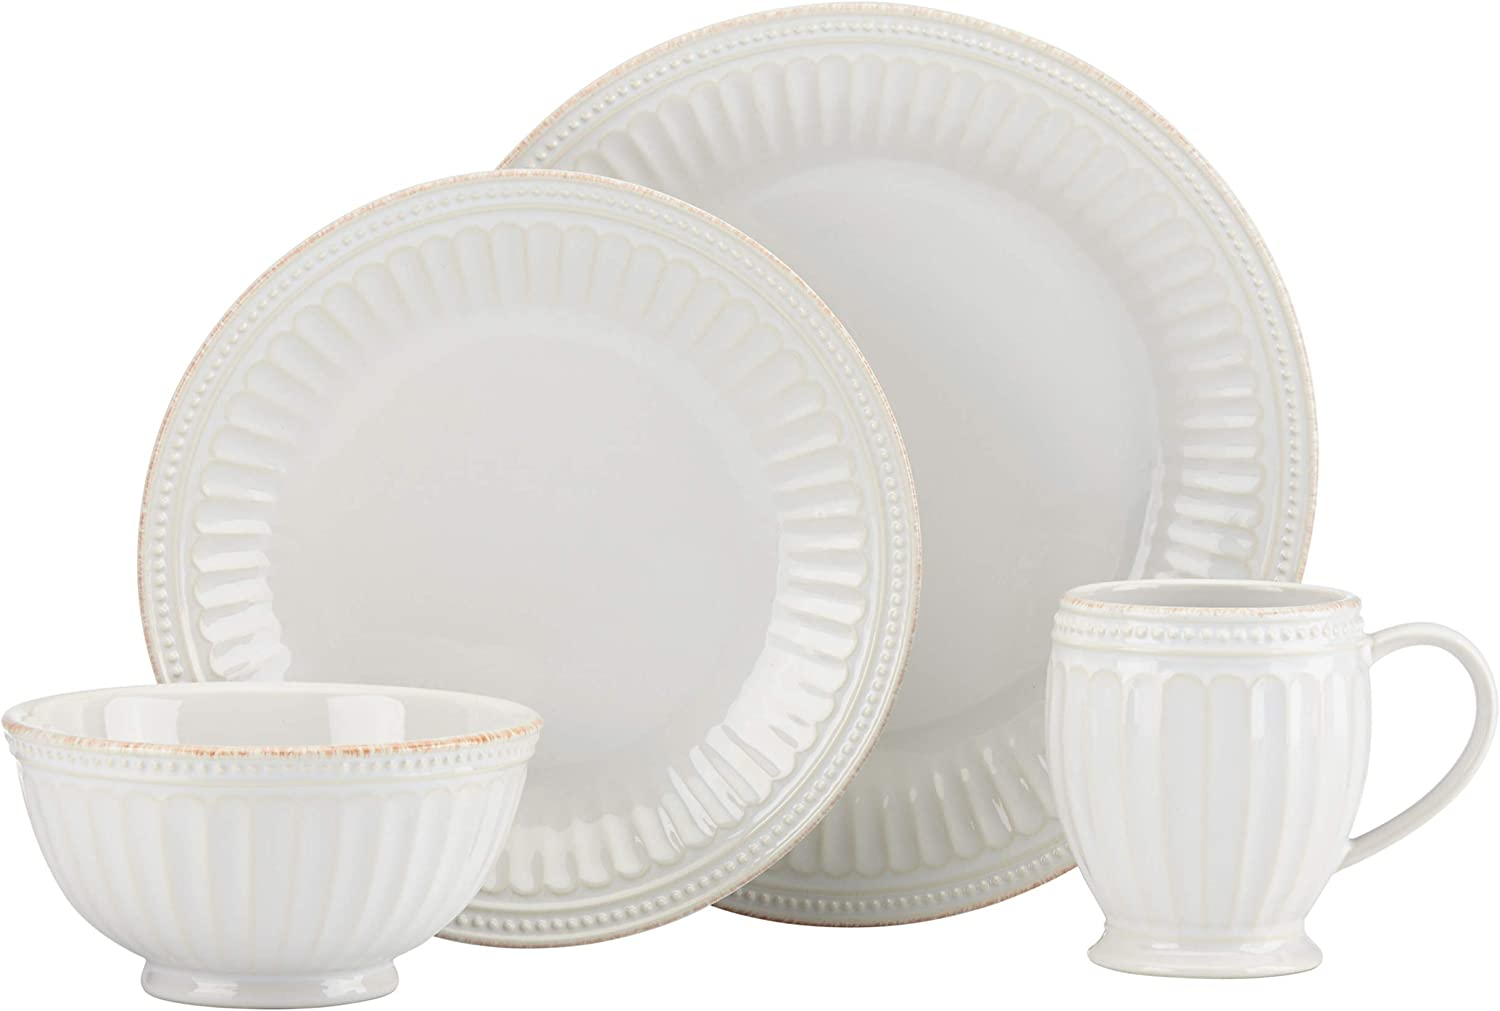 Lenox White Nippon regular agency French Perle Groove LB Cheap mail order sales 6.95 4Pc Place Setting